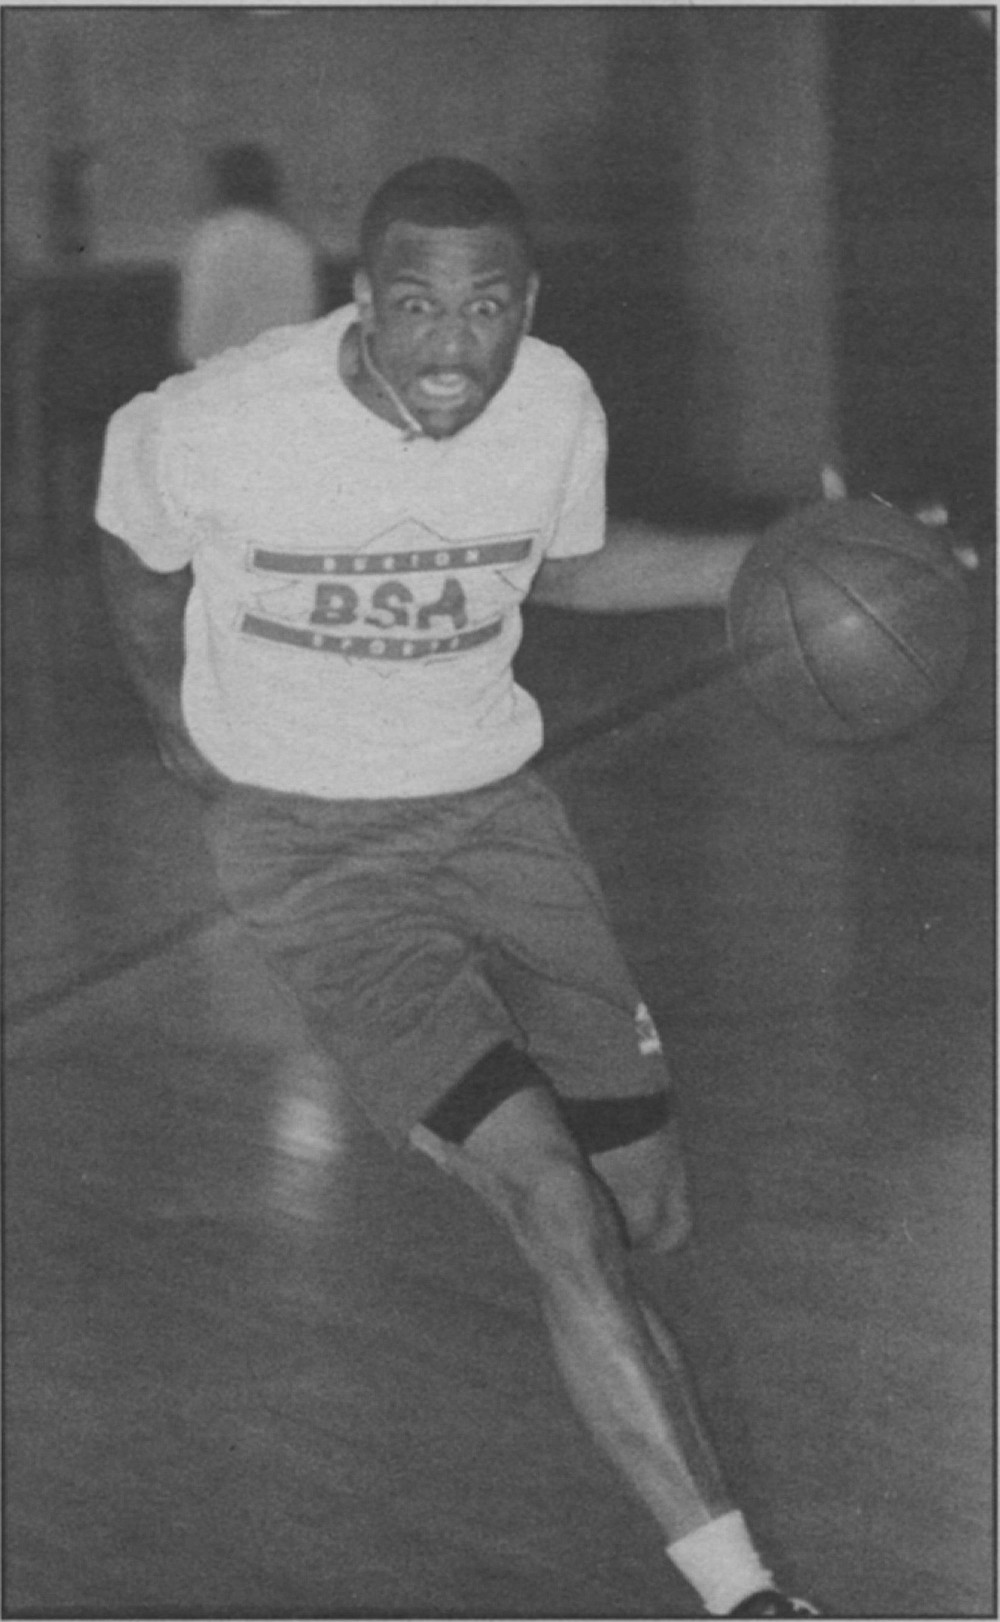 Dwayne Burton played all over town, including the Tierrasanta league, which he considered the strongest.